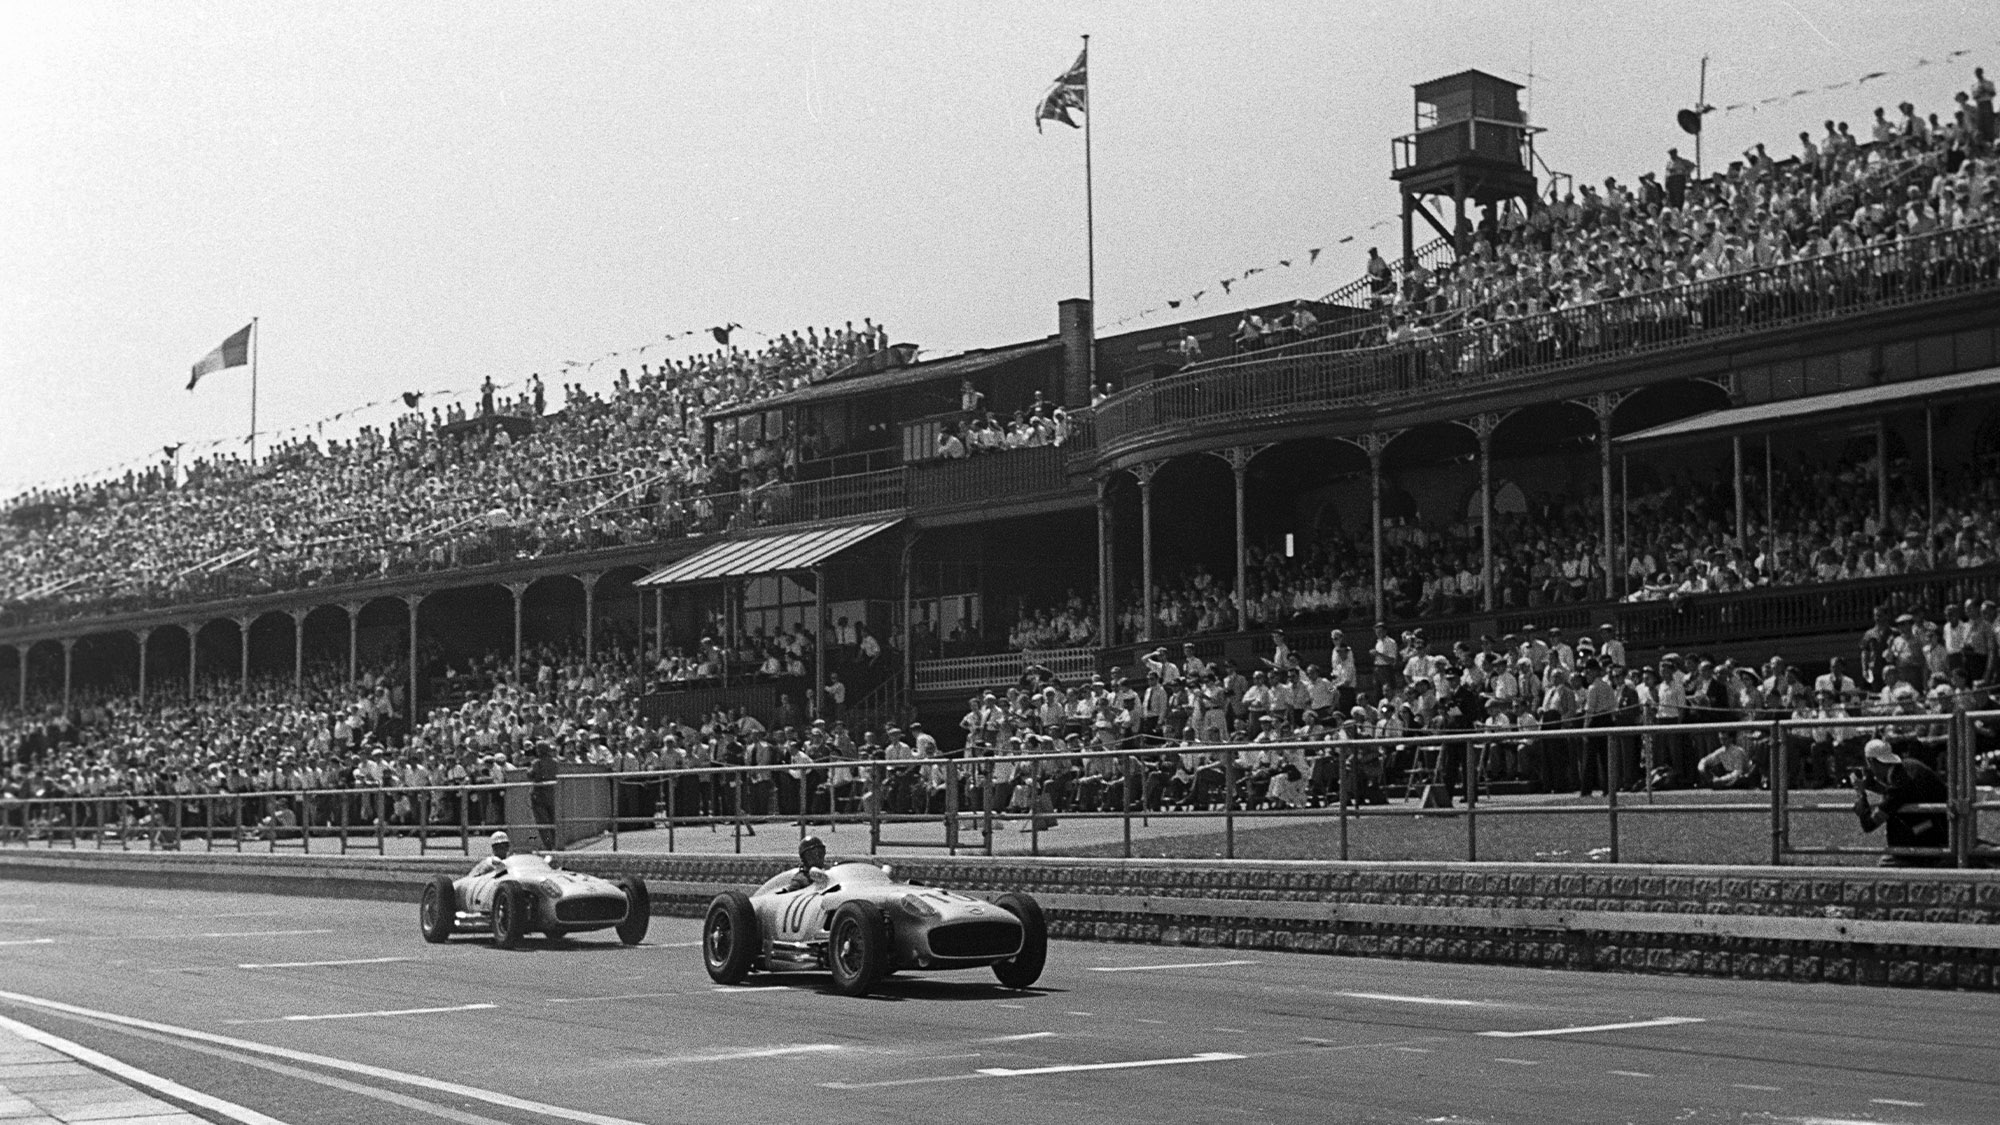 Juan Manuel Fangio leads across the start finish line at Aintree during the 1955 British Grand Prix